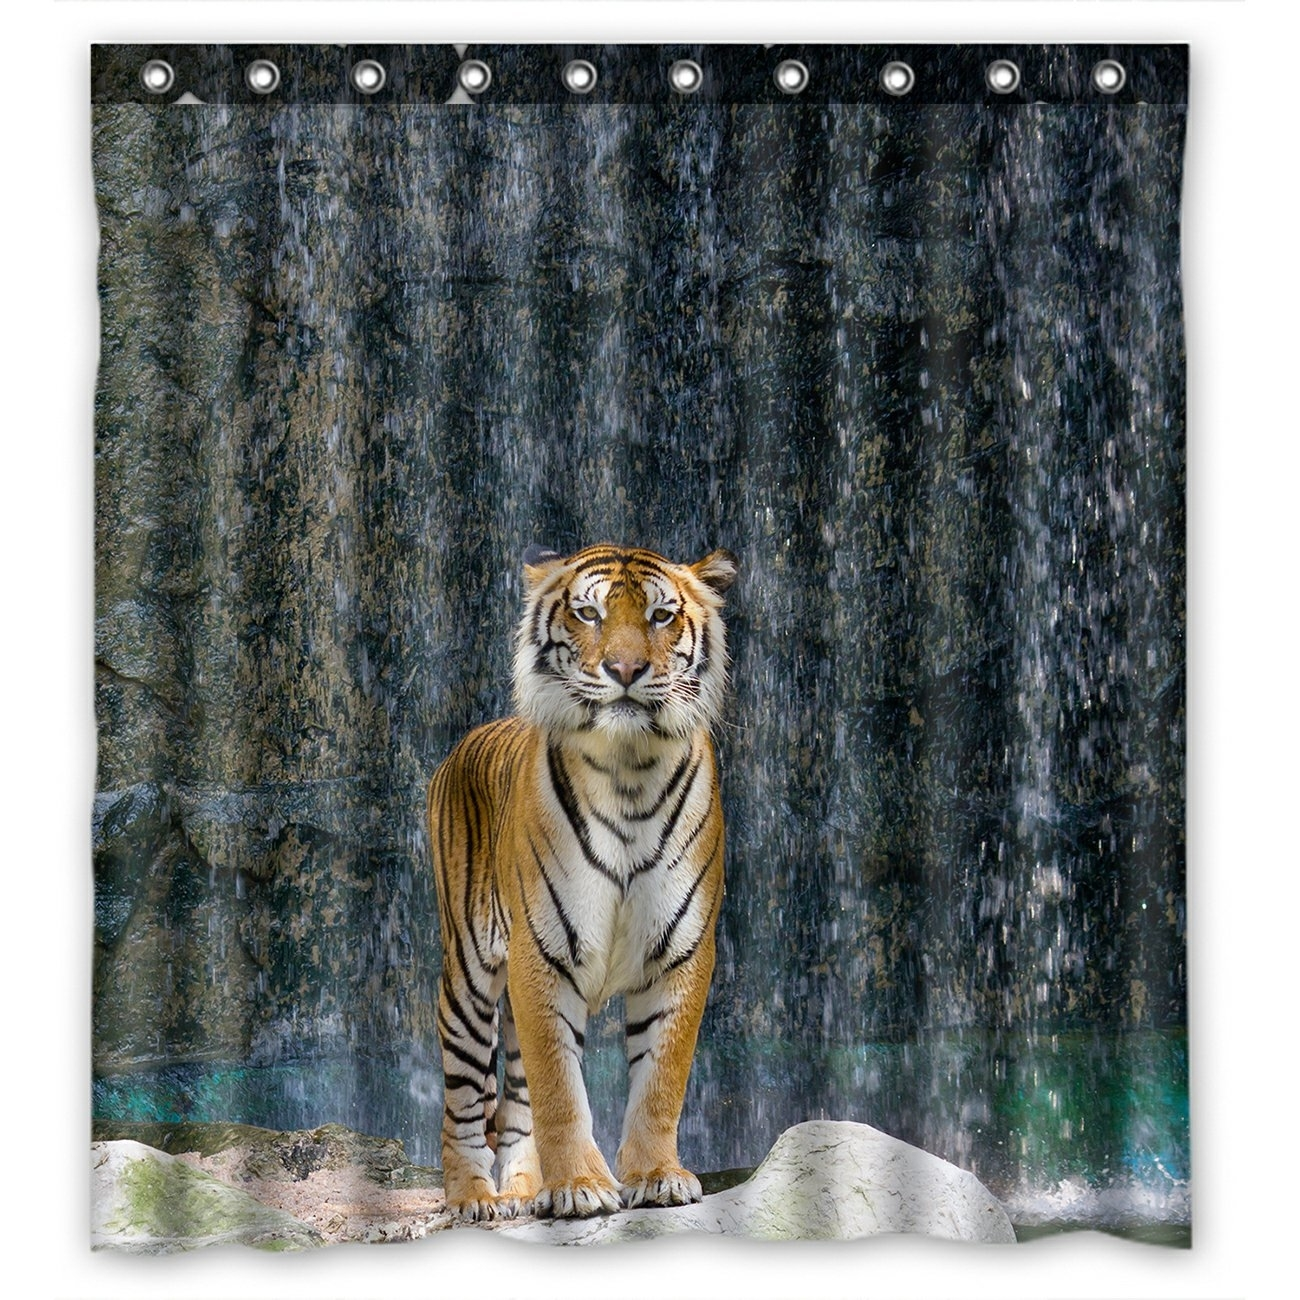 Animal Shower Curtain, Tiger Standing on the Rock near the waterfall mountain landscape Shower Curtain 66x72 inch